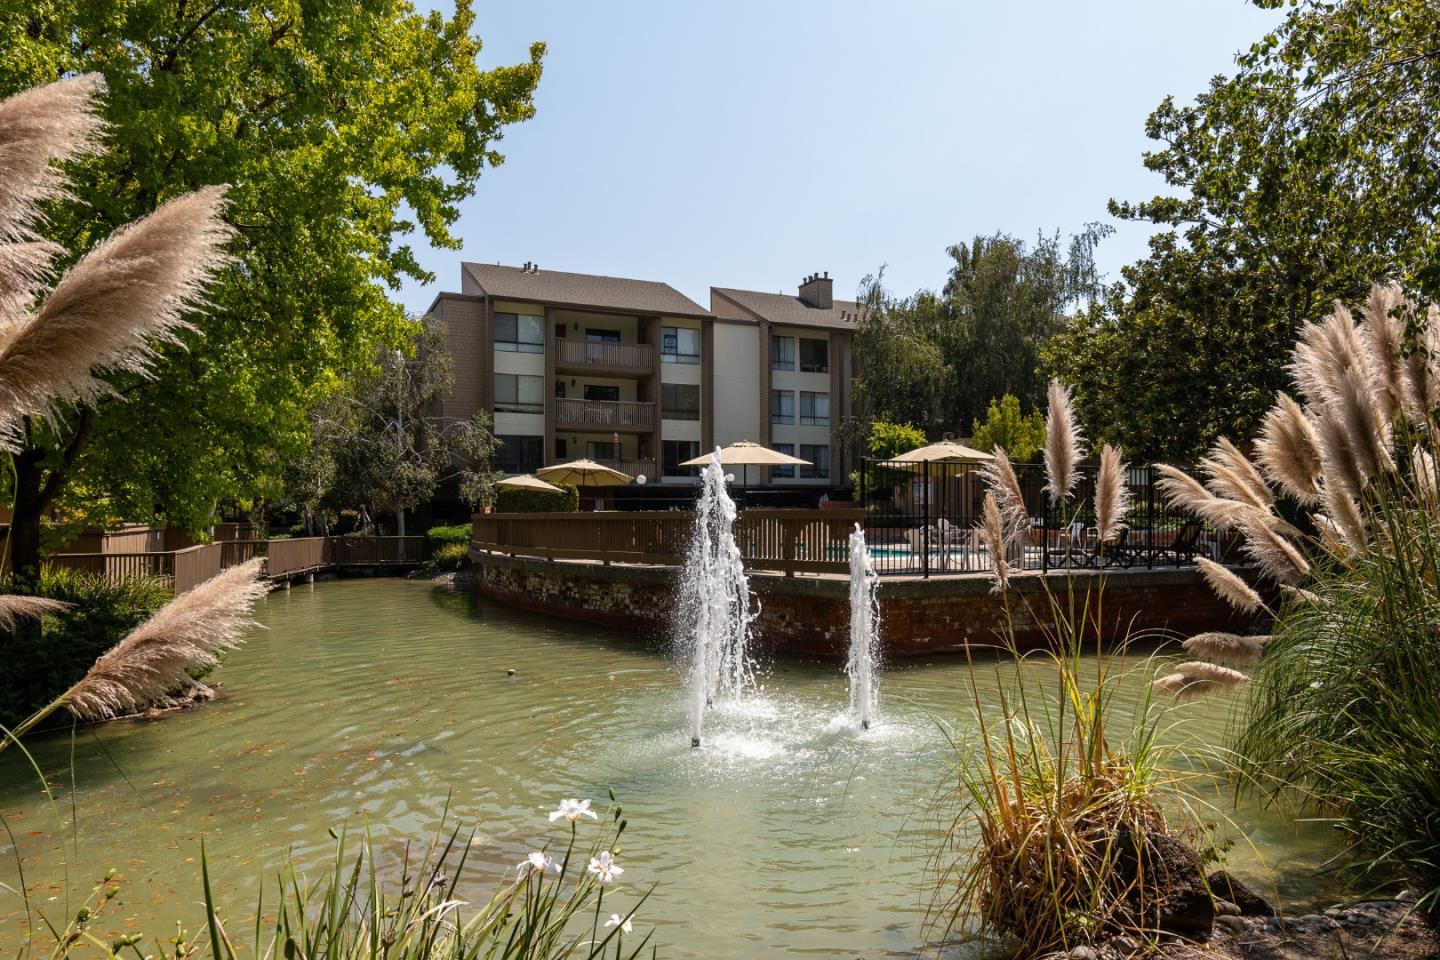 Photo for 49 Showers Drive #W207, MOUNTAIN VIEW, CA 94040 (MLS # ML81861832)